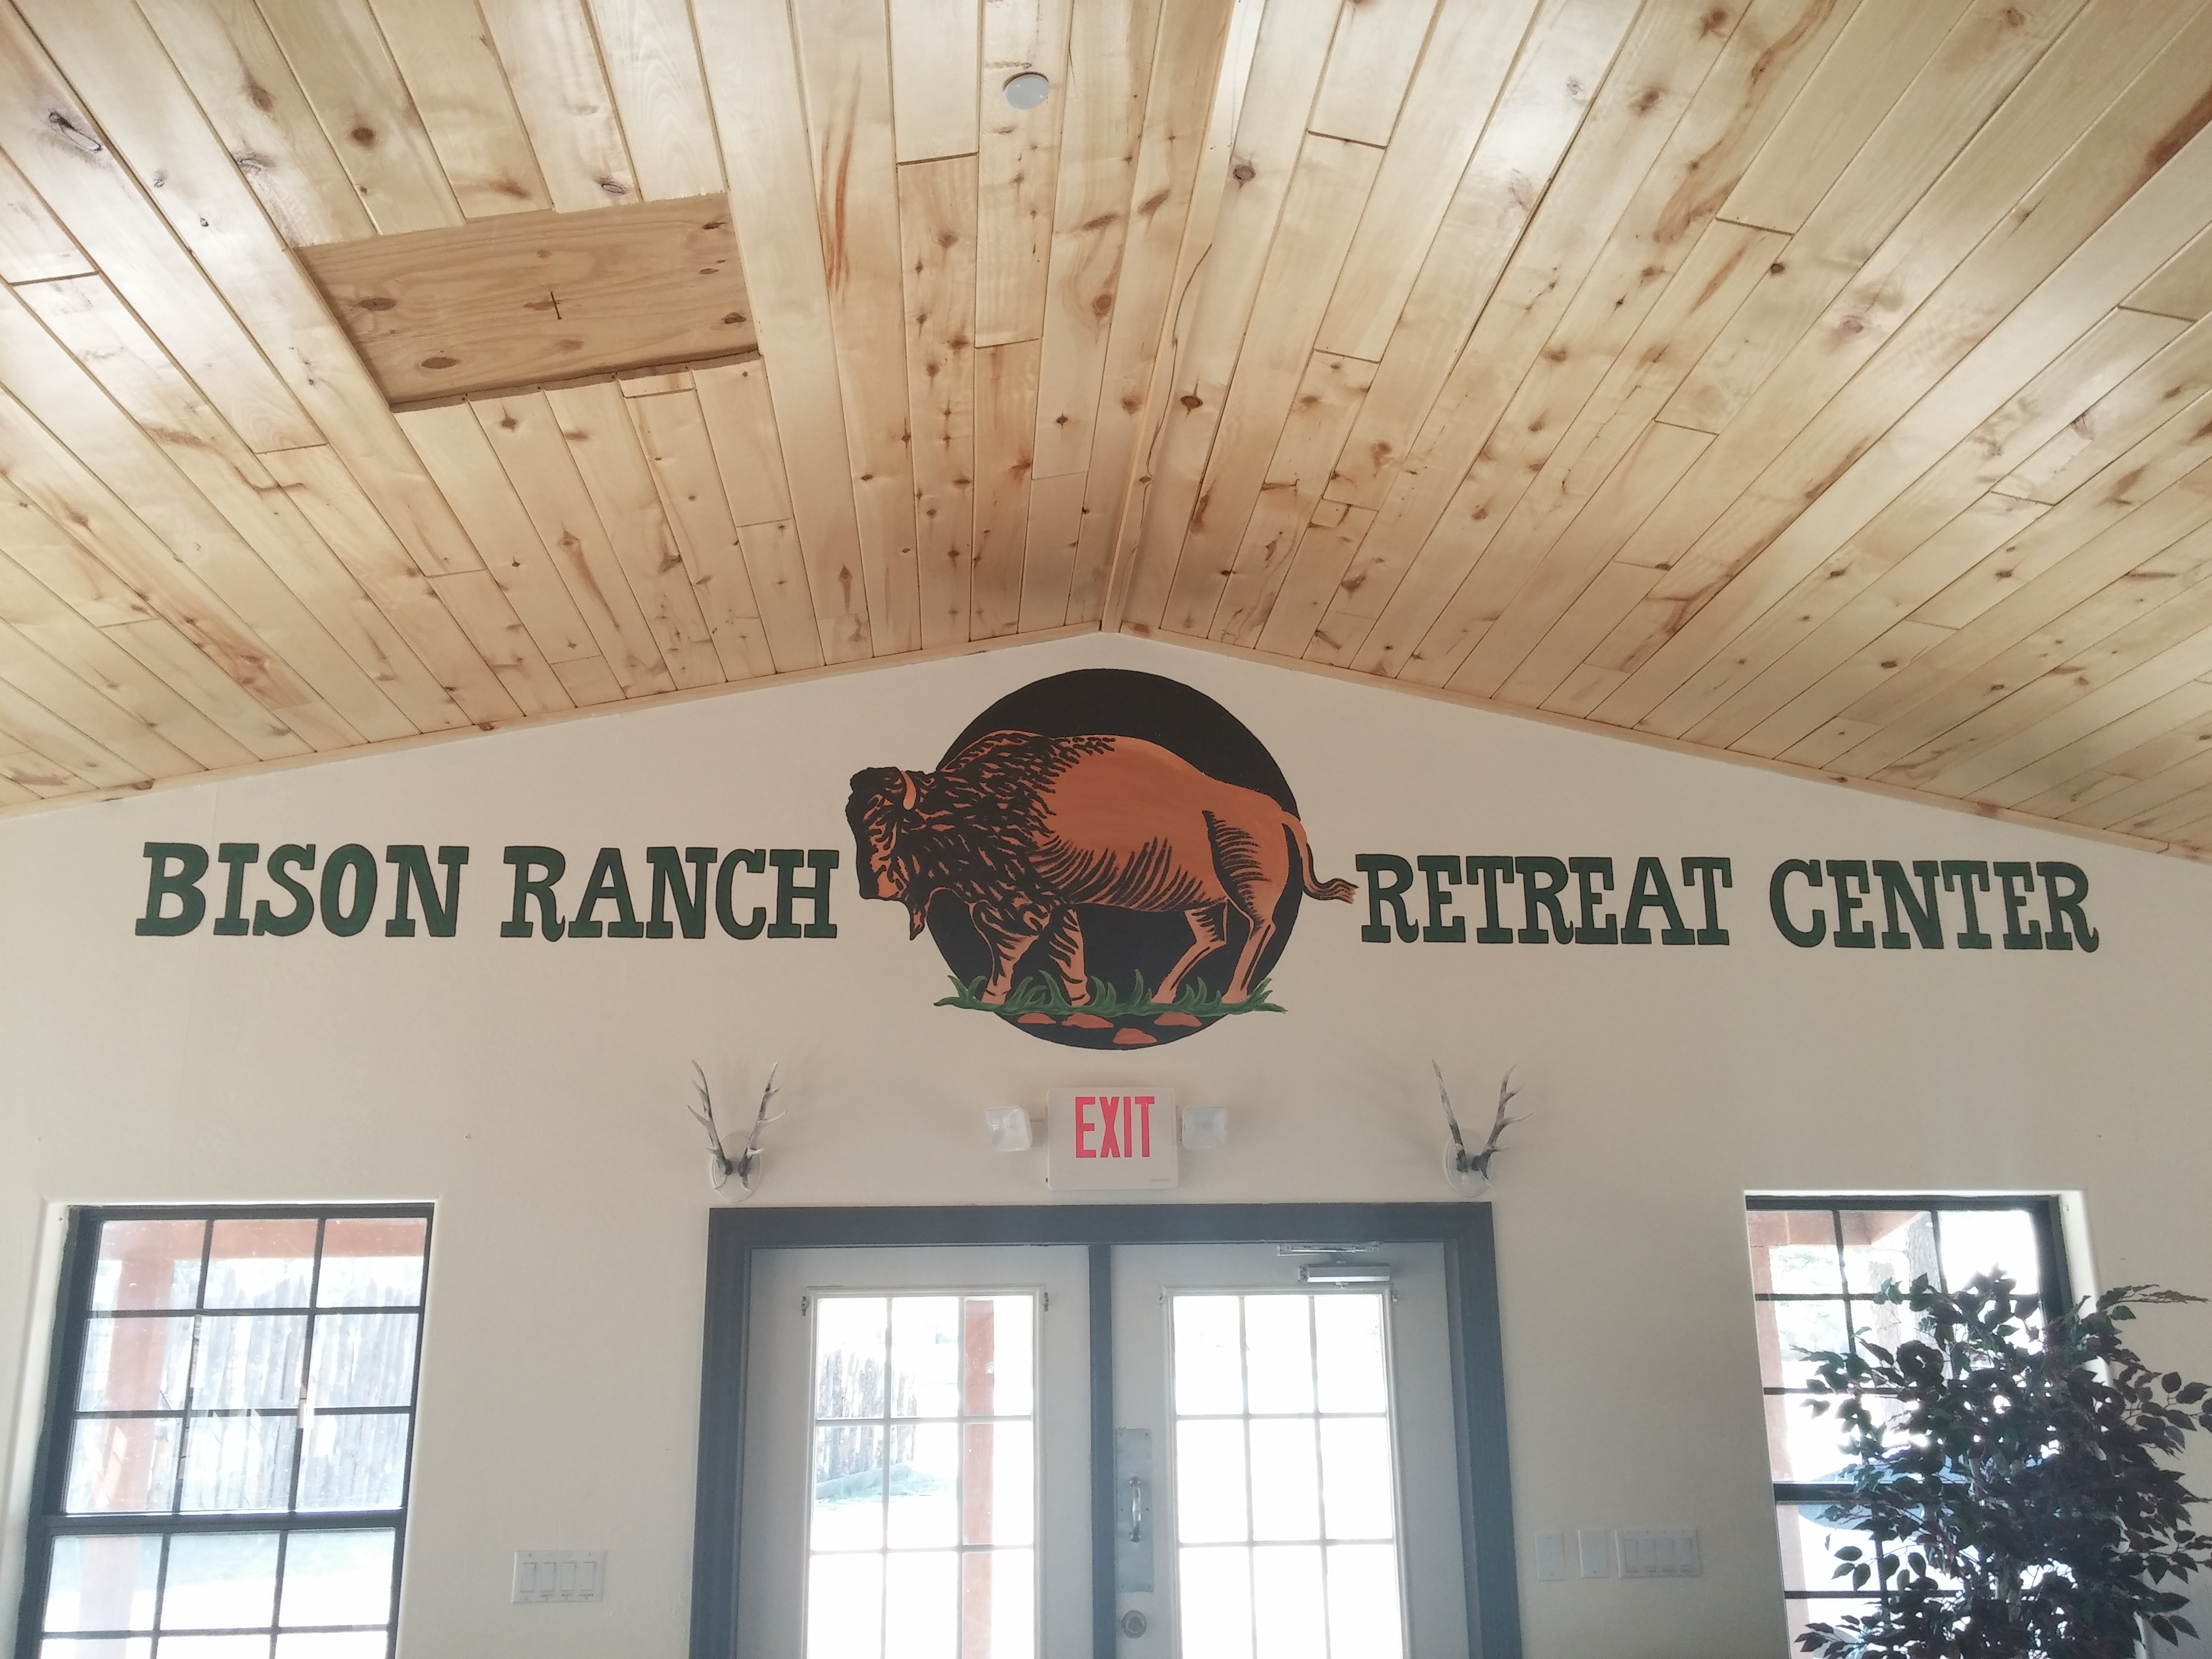 Bison Ranch Retreat Center AZ